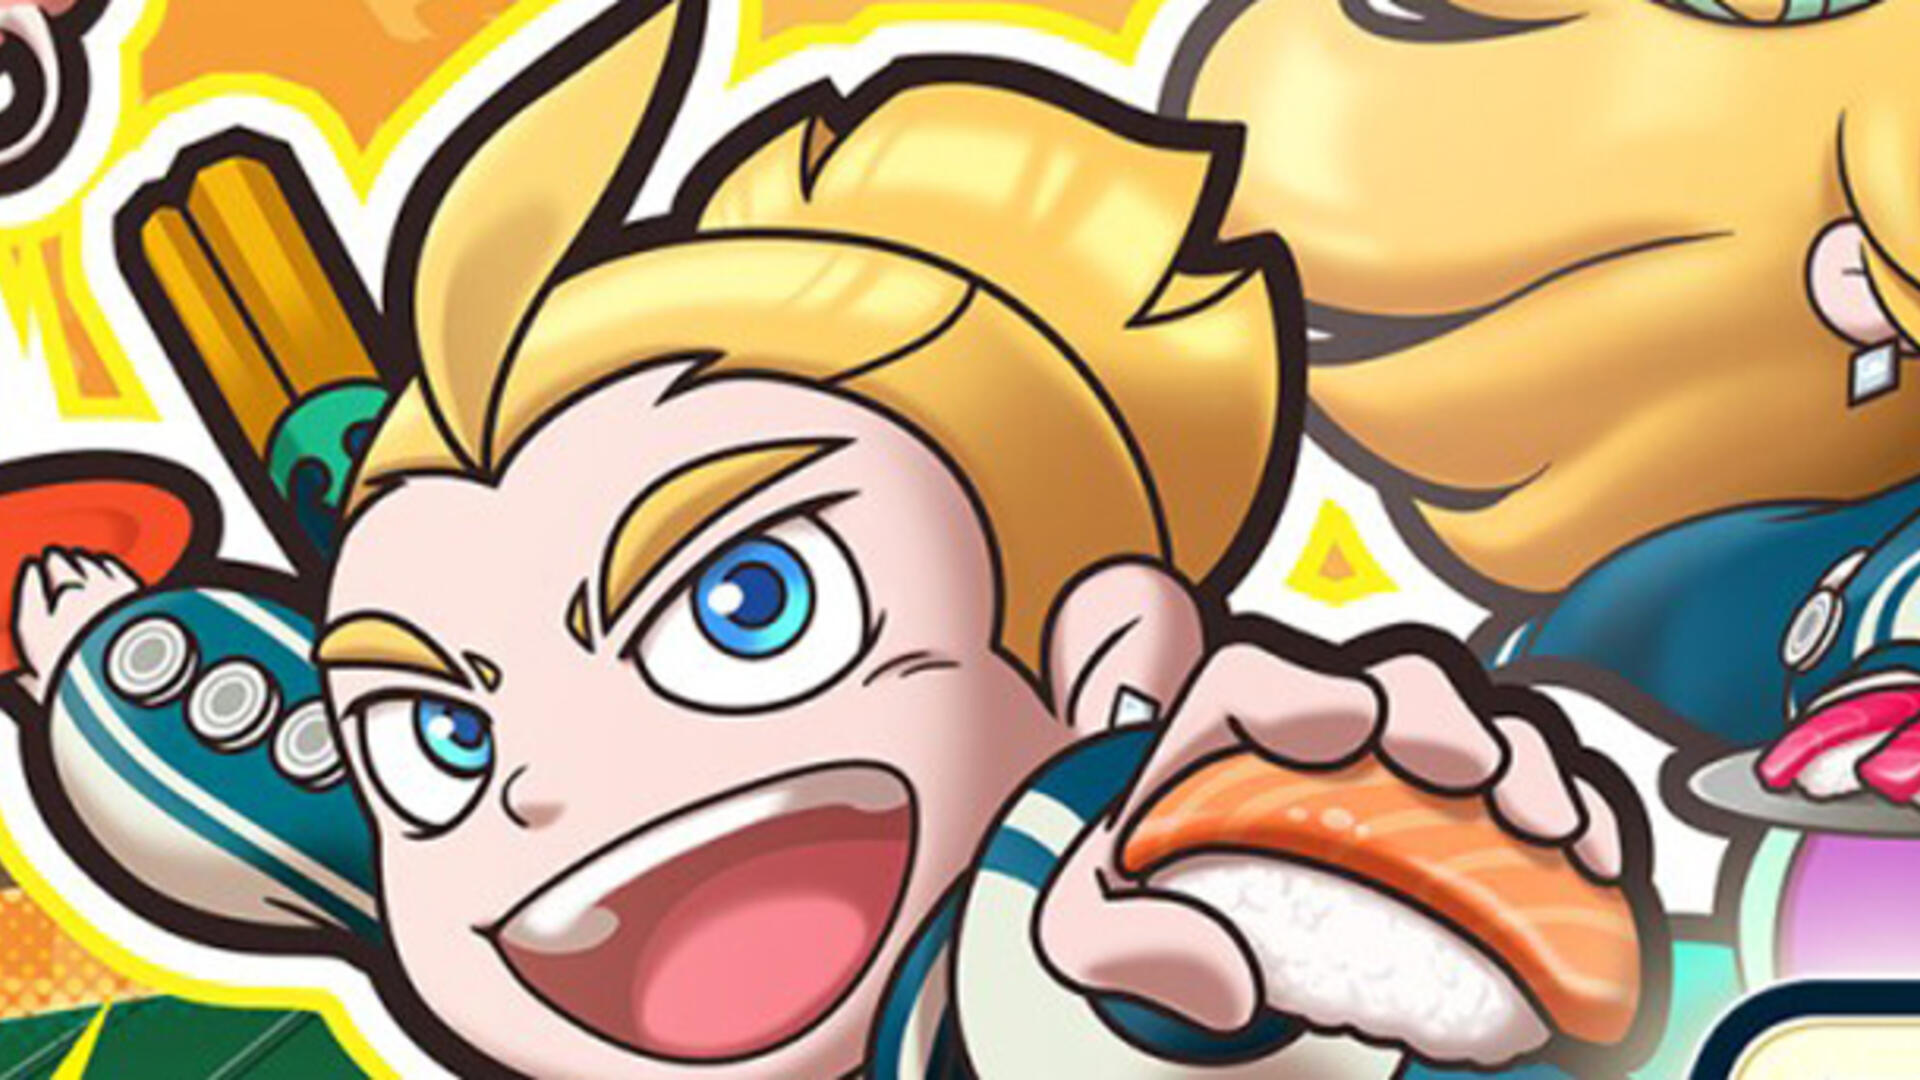 Sushi Striker, Switch's Charming Local Multiplayer Puzzler, is Available Today on eShop